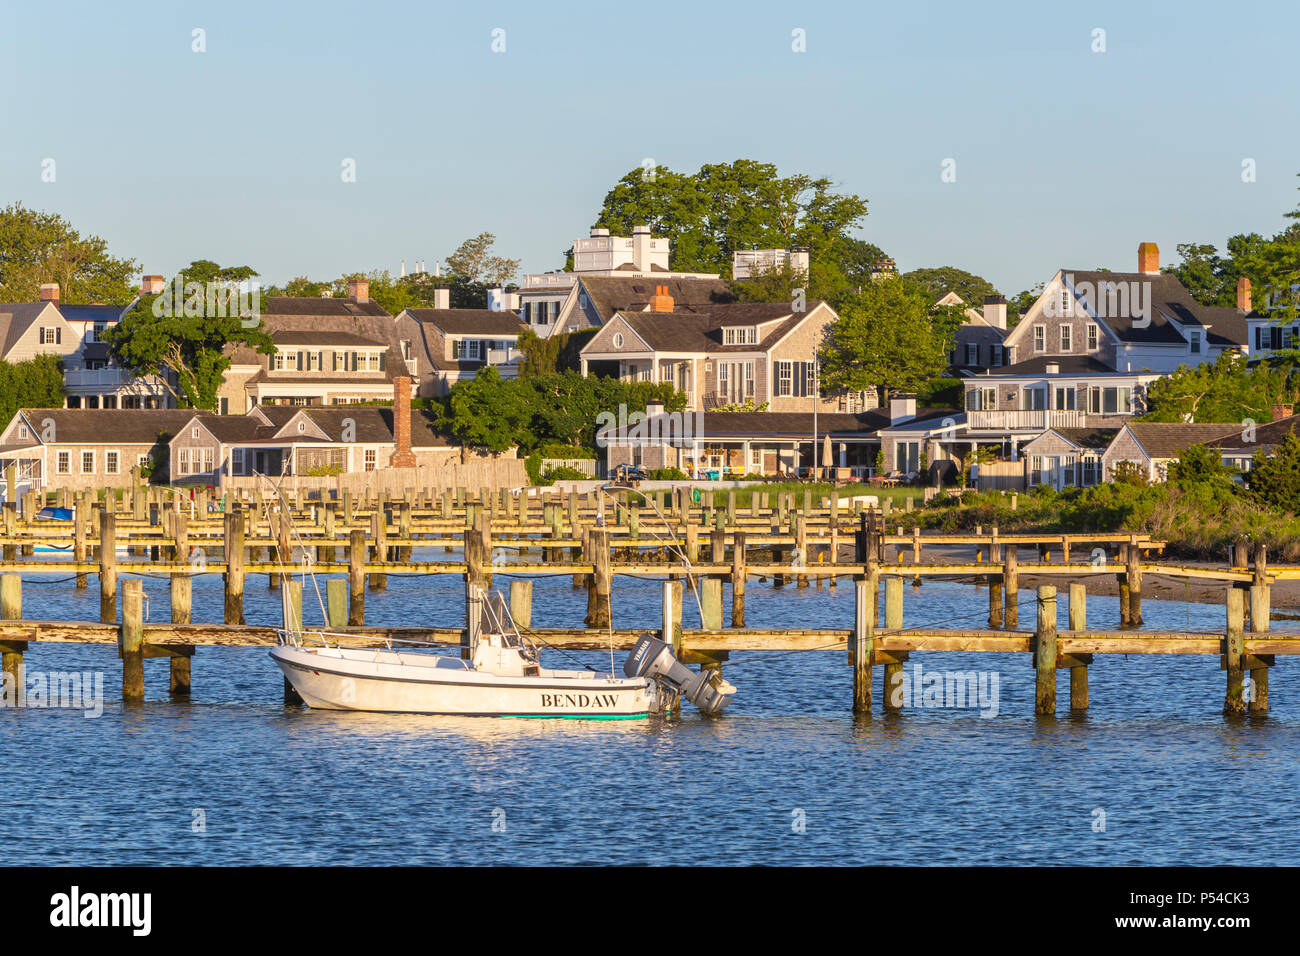 A boat docked in the harbor, overlooked by stately sea captains' homes in Edgartown, Massachusetts on Martha's Vineyard. - Stock Image